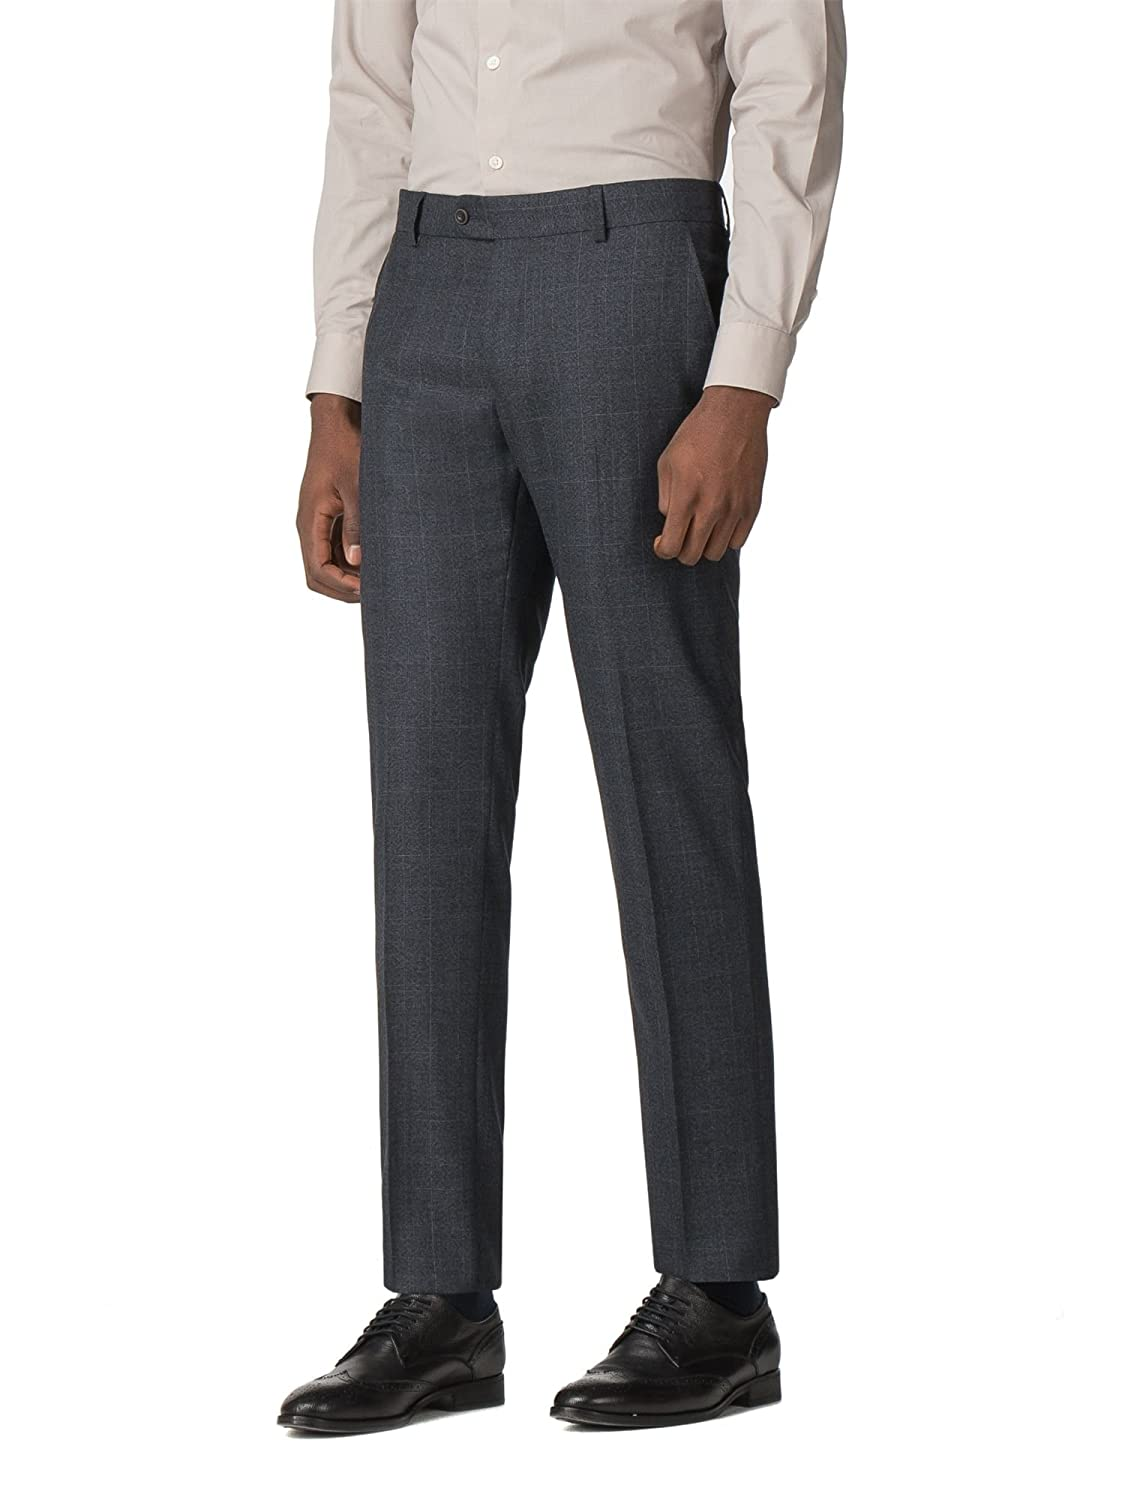 Limehaus Blue with Rust Overcheck Slim Fit Trousers 0050464 by Suit Direct